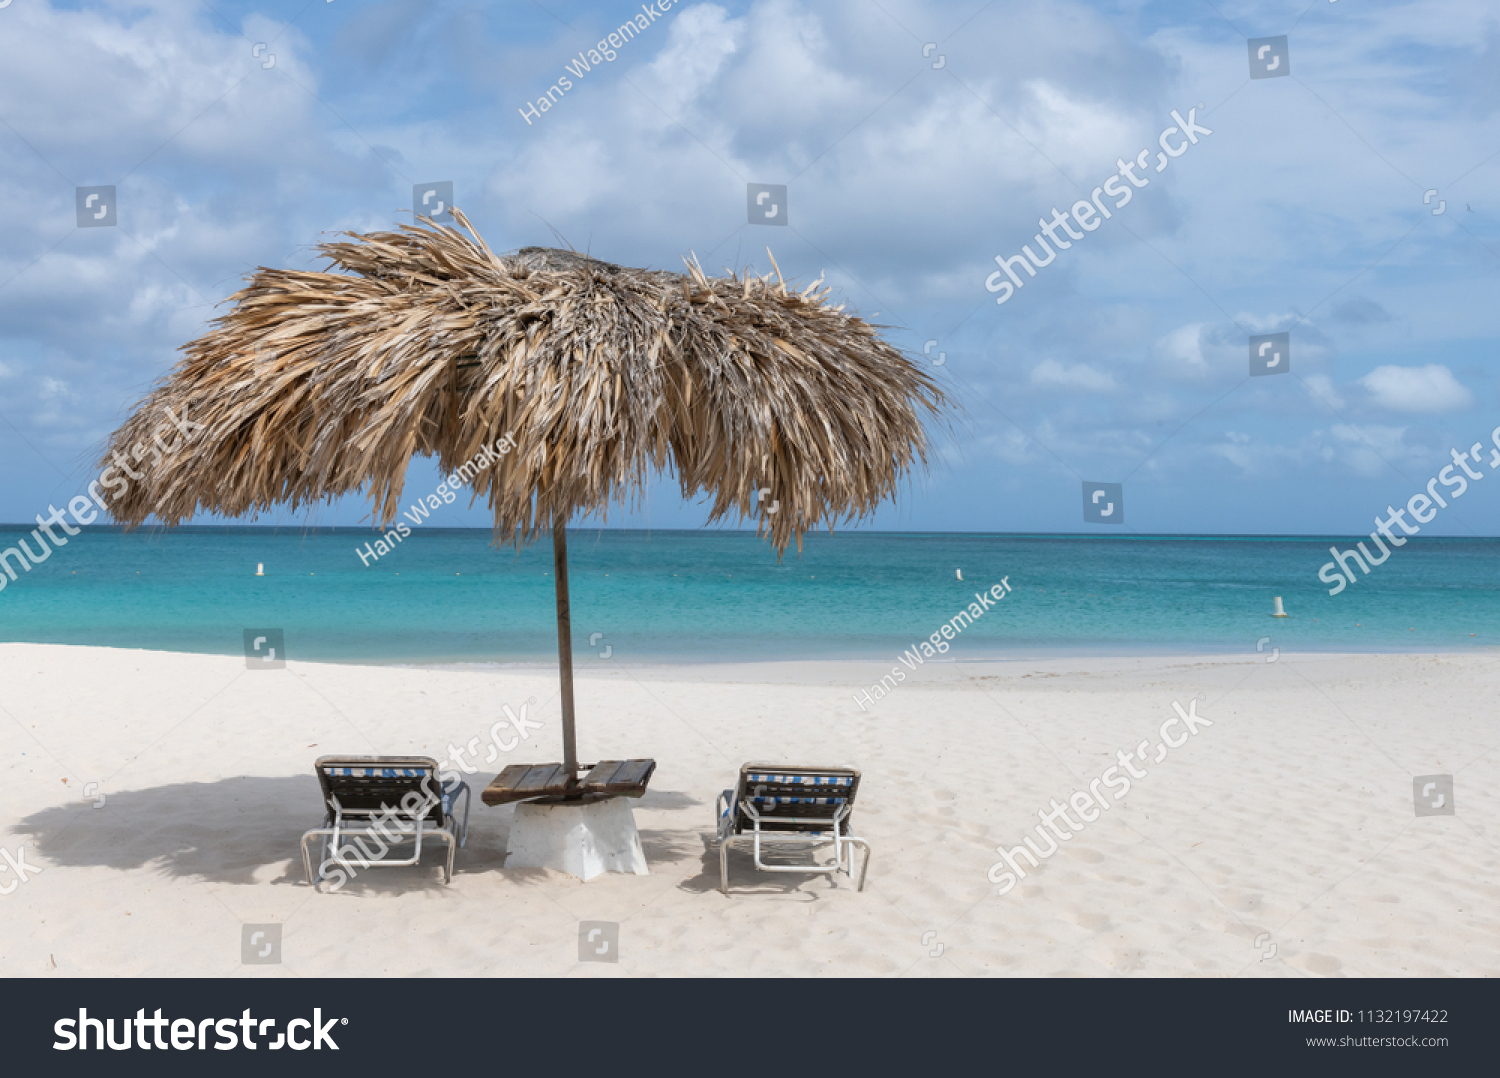 Beach Lounge Chairs Beach Lounge Chairs Under Thatched Umbrella Stock Photo Edit Now